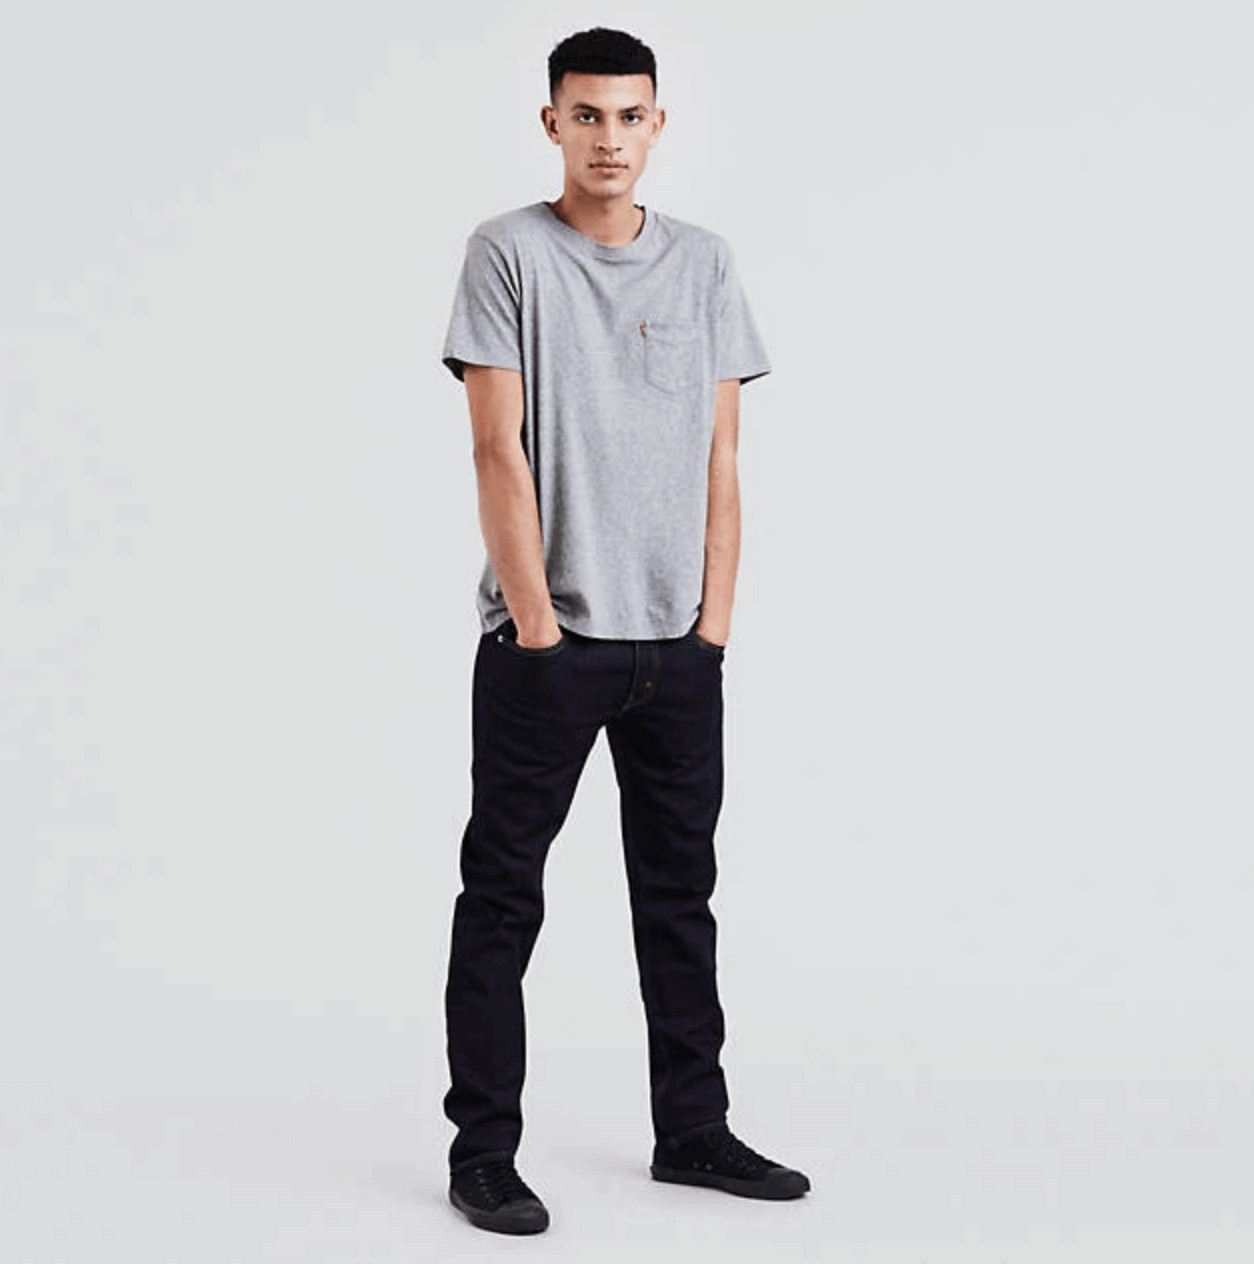 LEVI's 511 Slim Fit Stretch Jeans OuiPlease OuiBlog